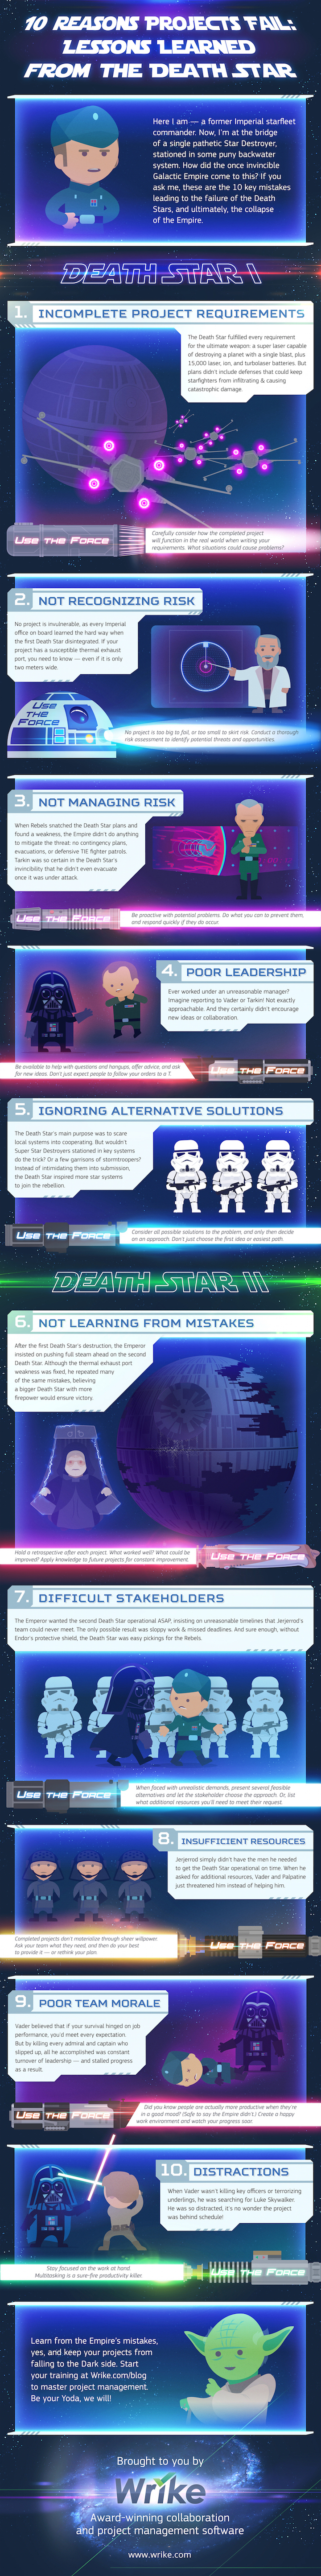 10 Reasons the Death Star Project Failed